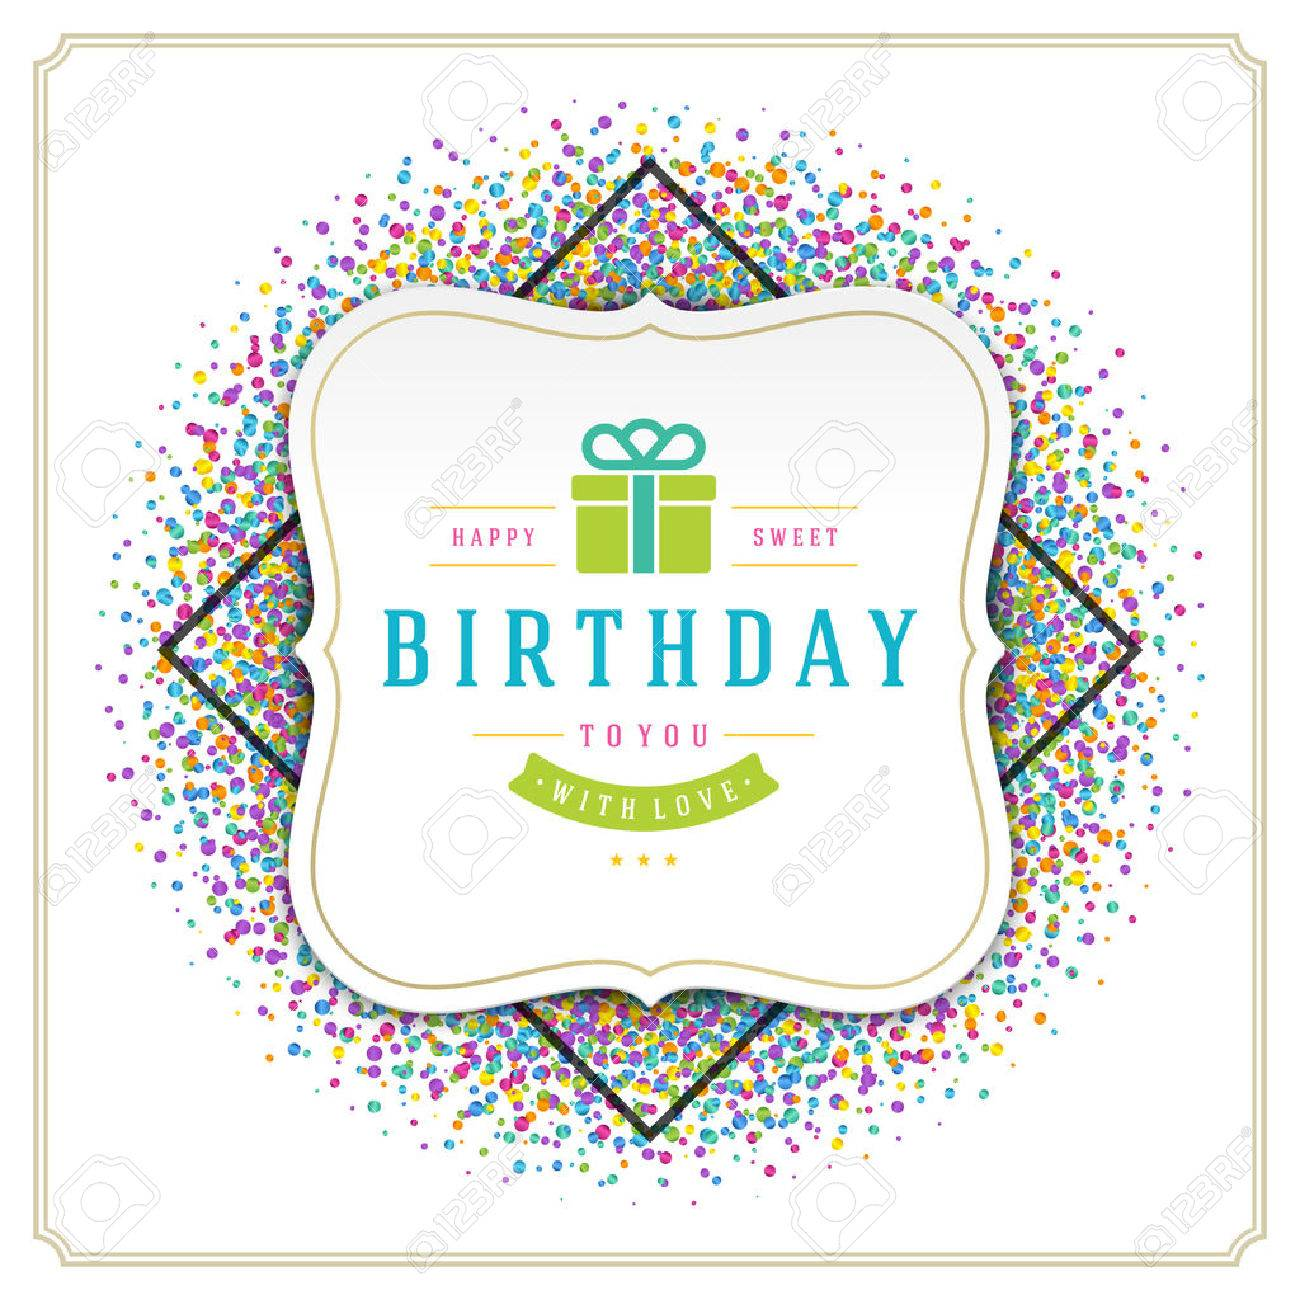 Happy Birthday Greeting Card Design Vector Template Royalty Free